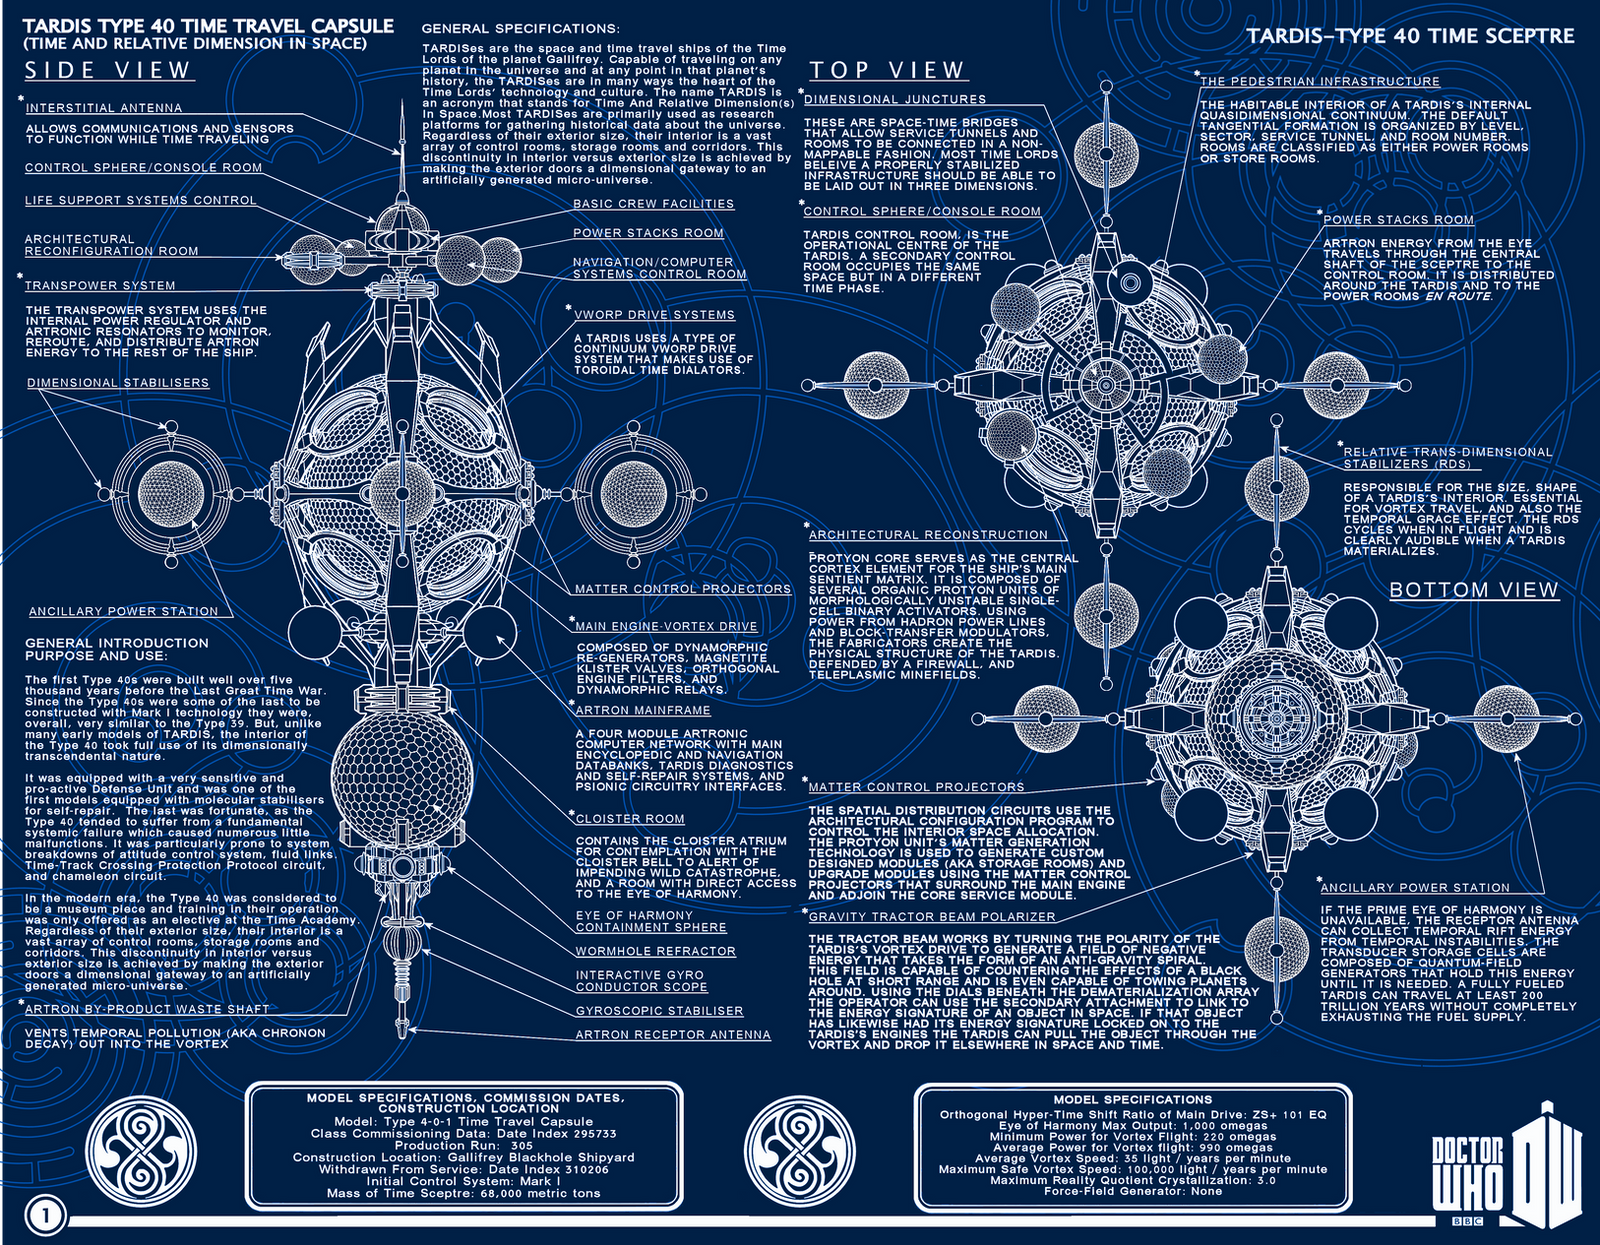 Ring Counter Schematic Guide And Troubleshooting Of Wiring Diagram Frequency Circuits Tardis Type 40 Blue Print Style Page 1 By Time Lord Rassilon On Deviantart 5 Digit